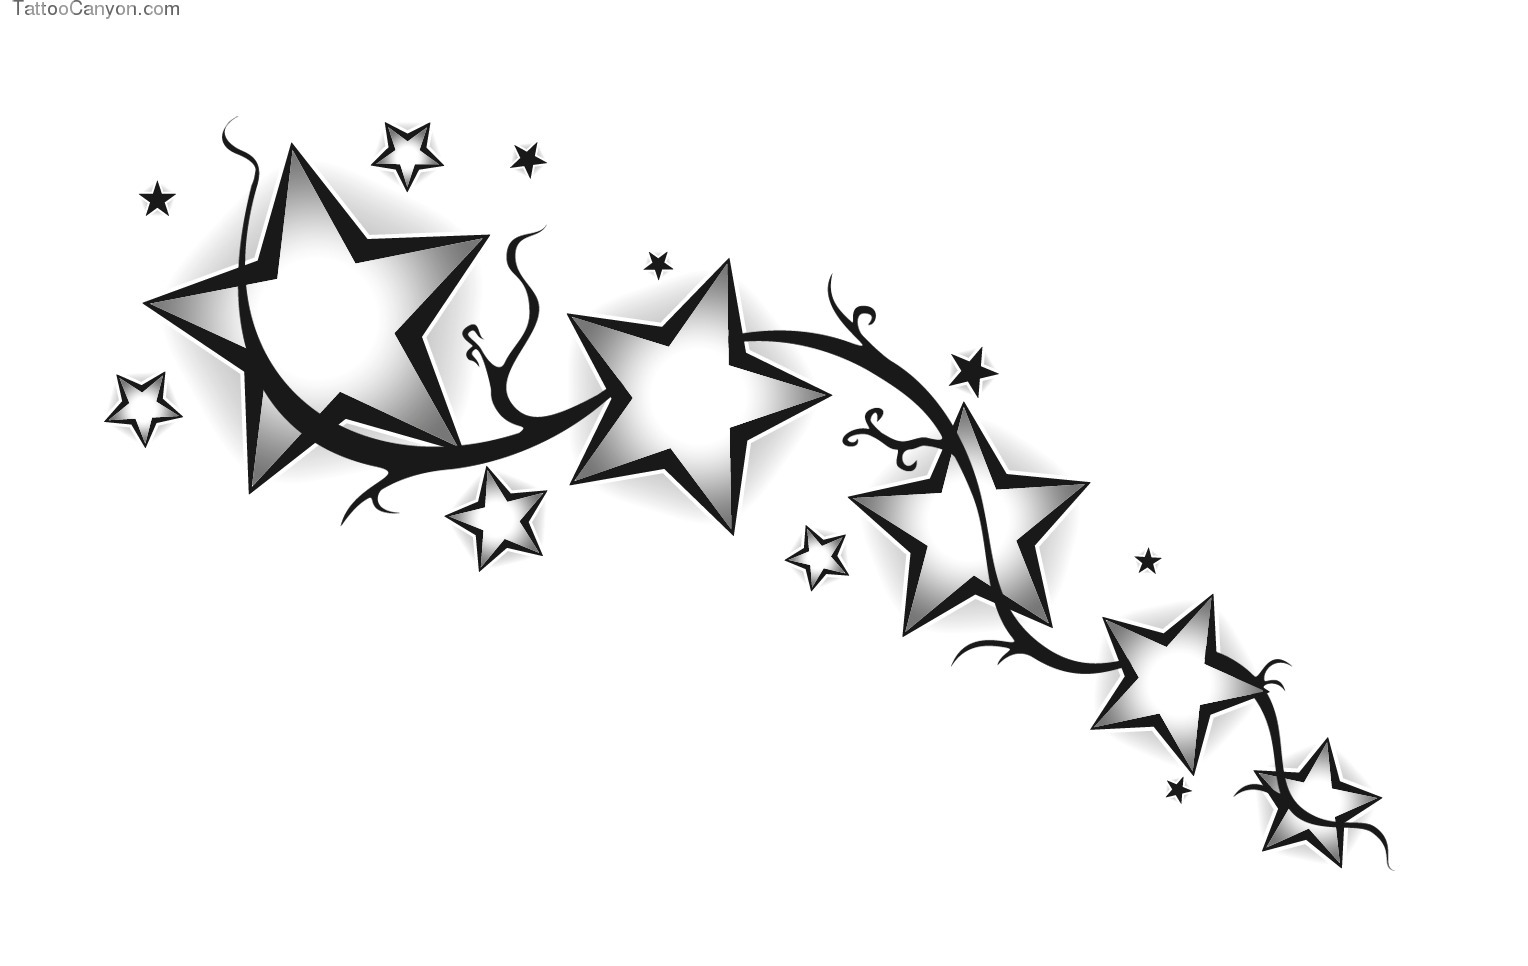 Stars Tattoos Png image #19380 - Star Tattoos PNG